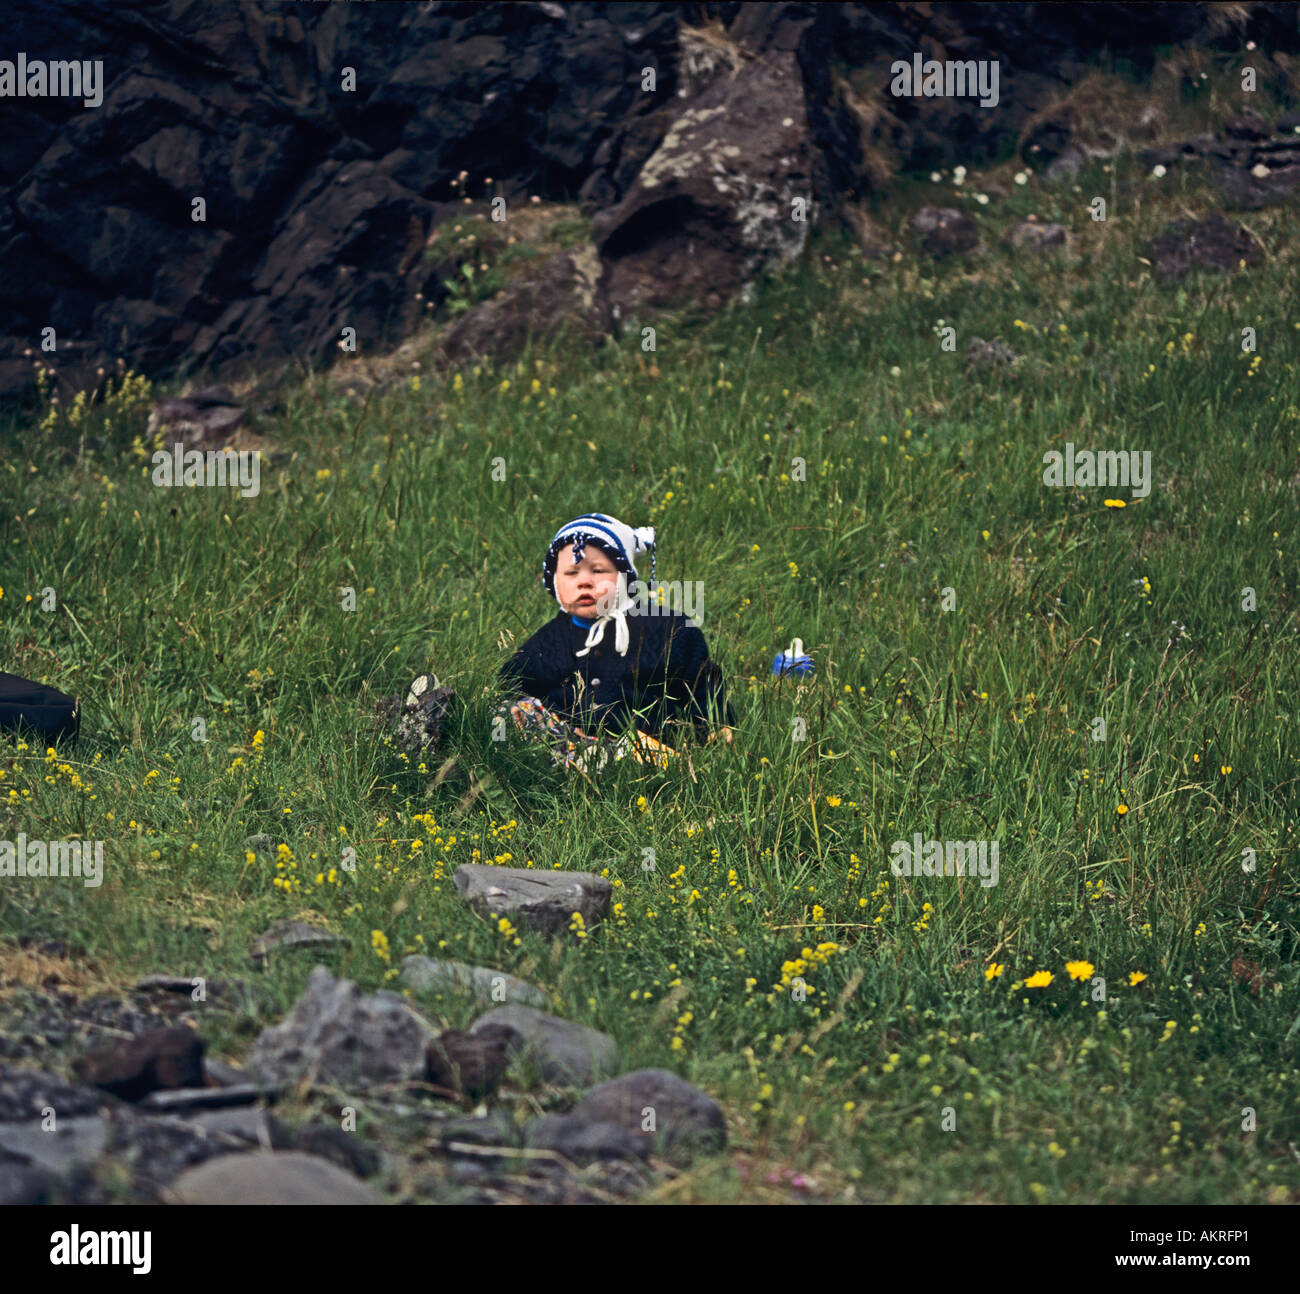 ICELAND EUROPE July Ten month old Icelandic boy with chubby red cheeks sitting in the grass - Stock Image